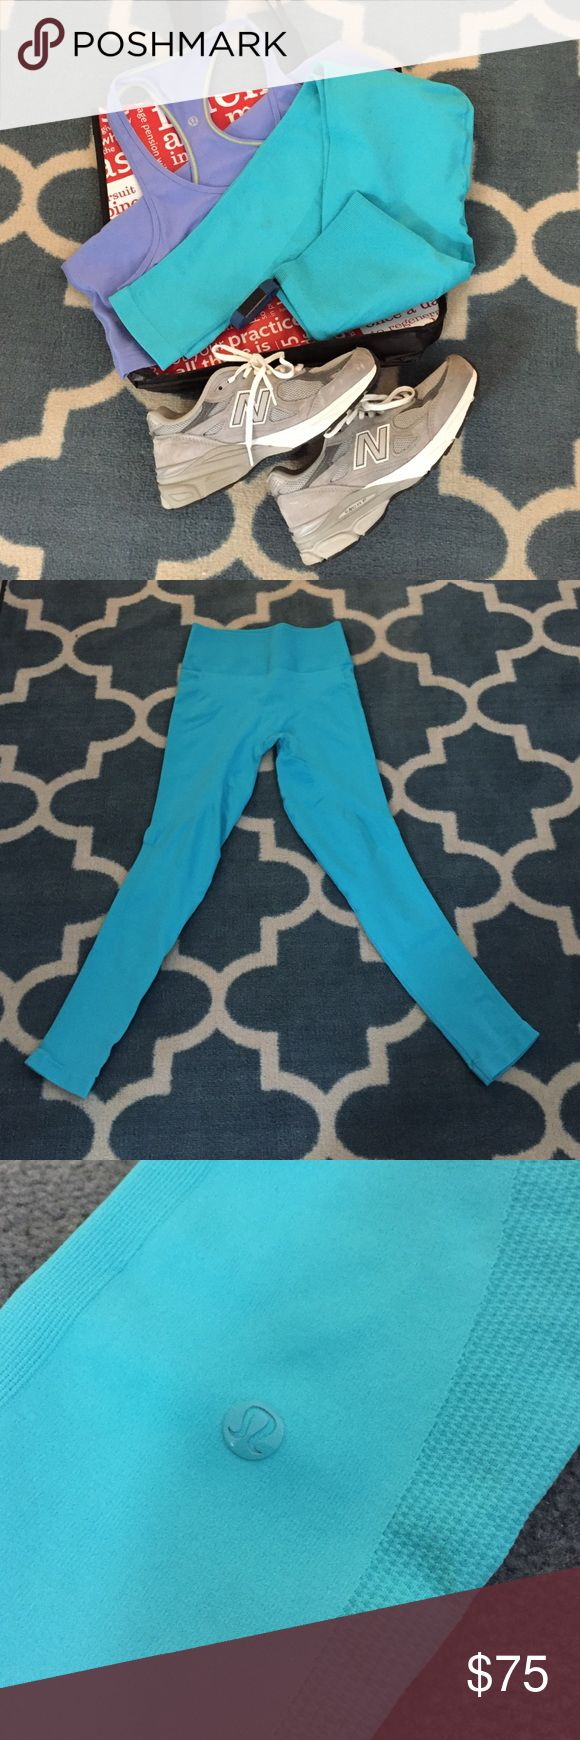 Zone In Tight - sz 10 Great pair of real lululemon leggings. I've only worn these twice. As seen in pics there is no visible sign of wear and no pilling. I wore these for Carolina Panthers games and to yoga. Please message below with any questions. Thanks! lululemon athletica Pants Leggings